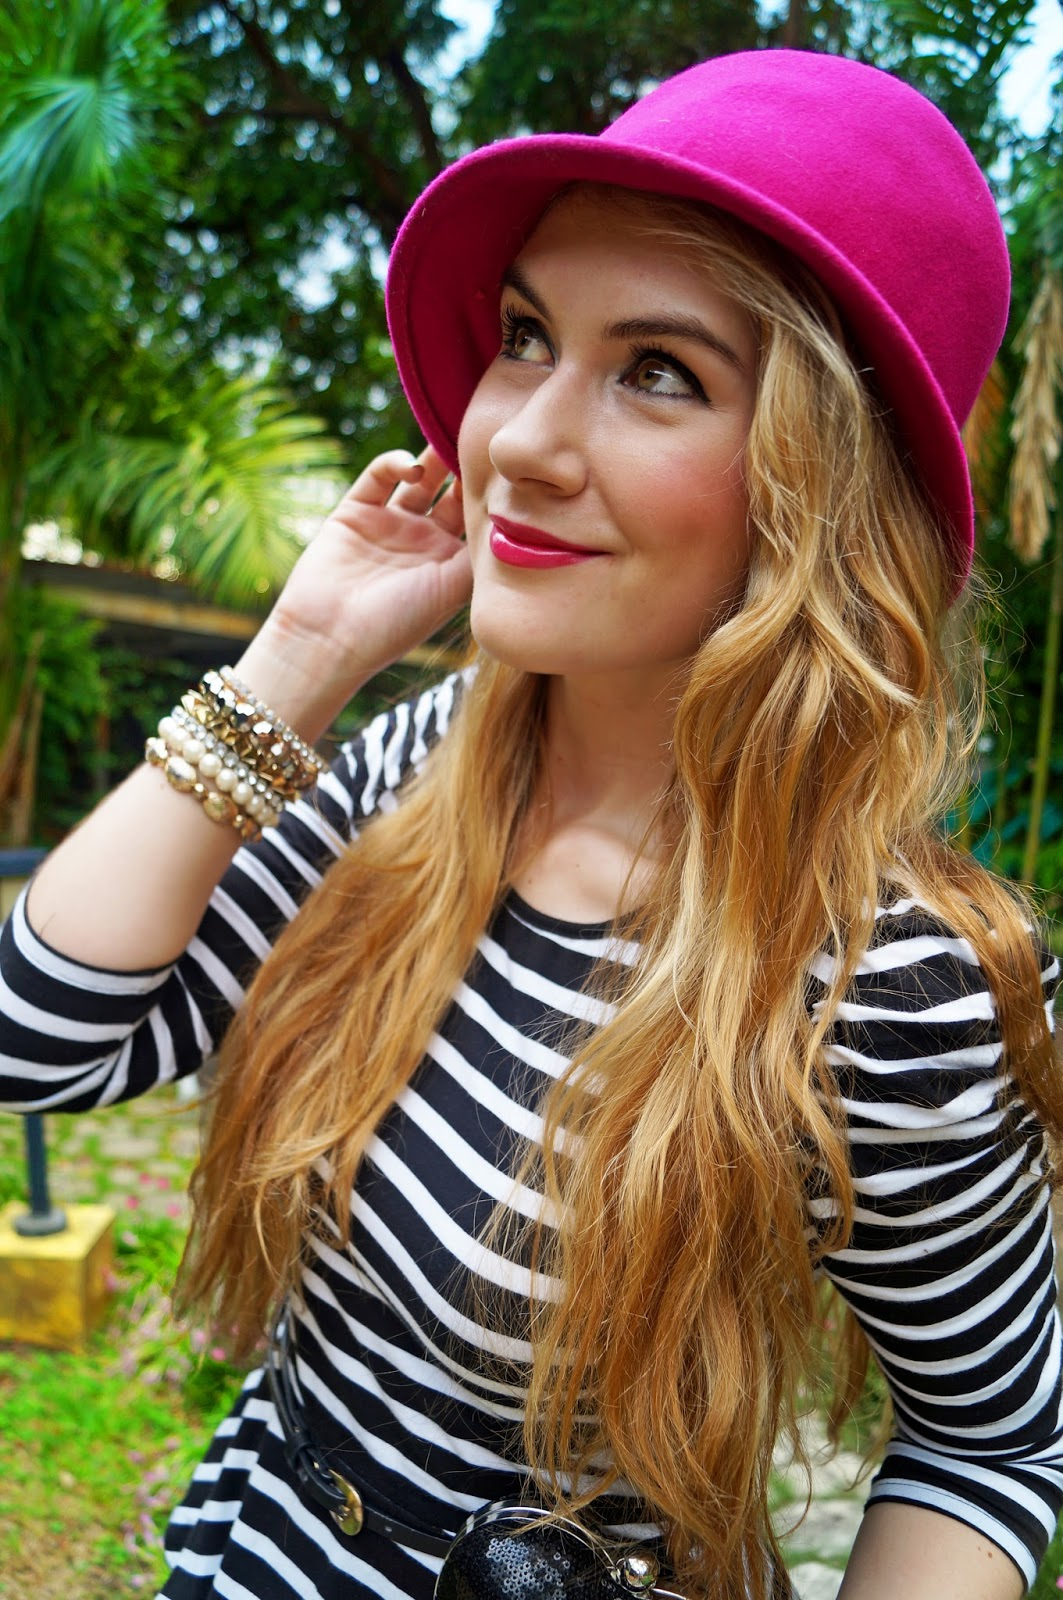 Everyday Fashion Blog, Feminine Makeup, Covergirl Pink Lipstick, Pink Hat